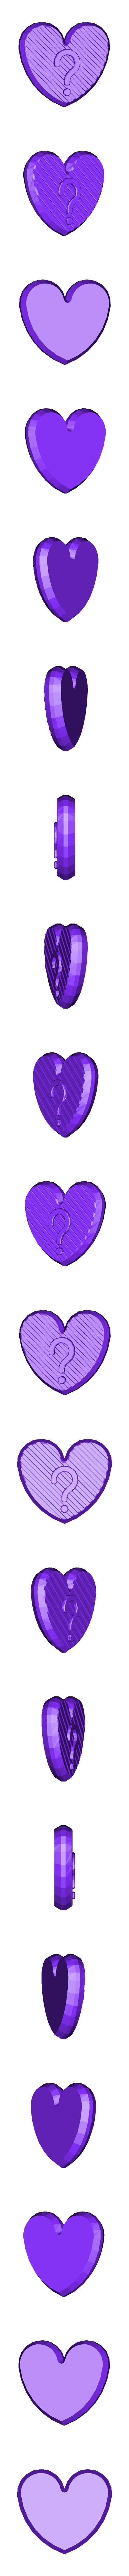 plp-coeur.stl Download free STL file PLP ROBOT HEART • 3D printing model, PLP